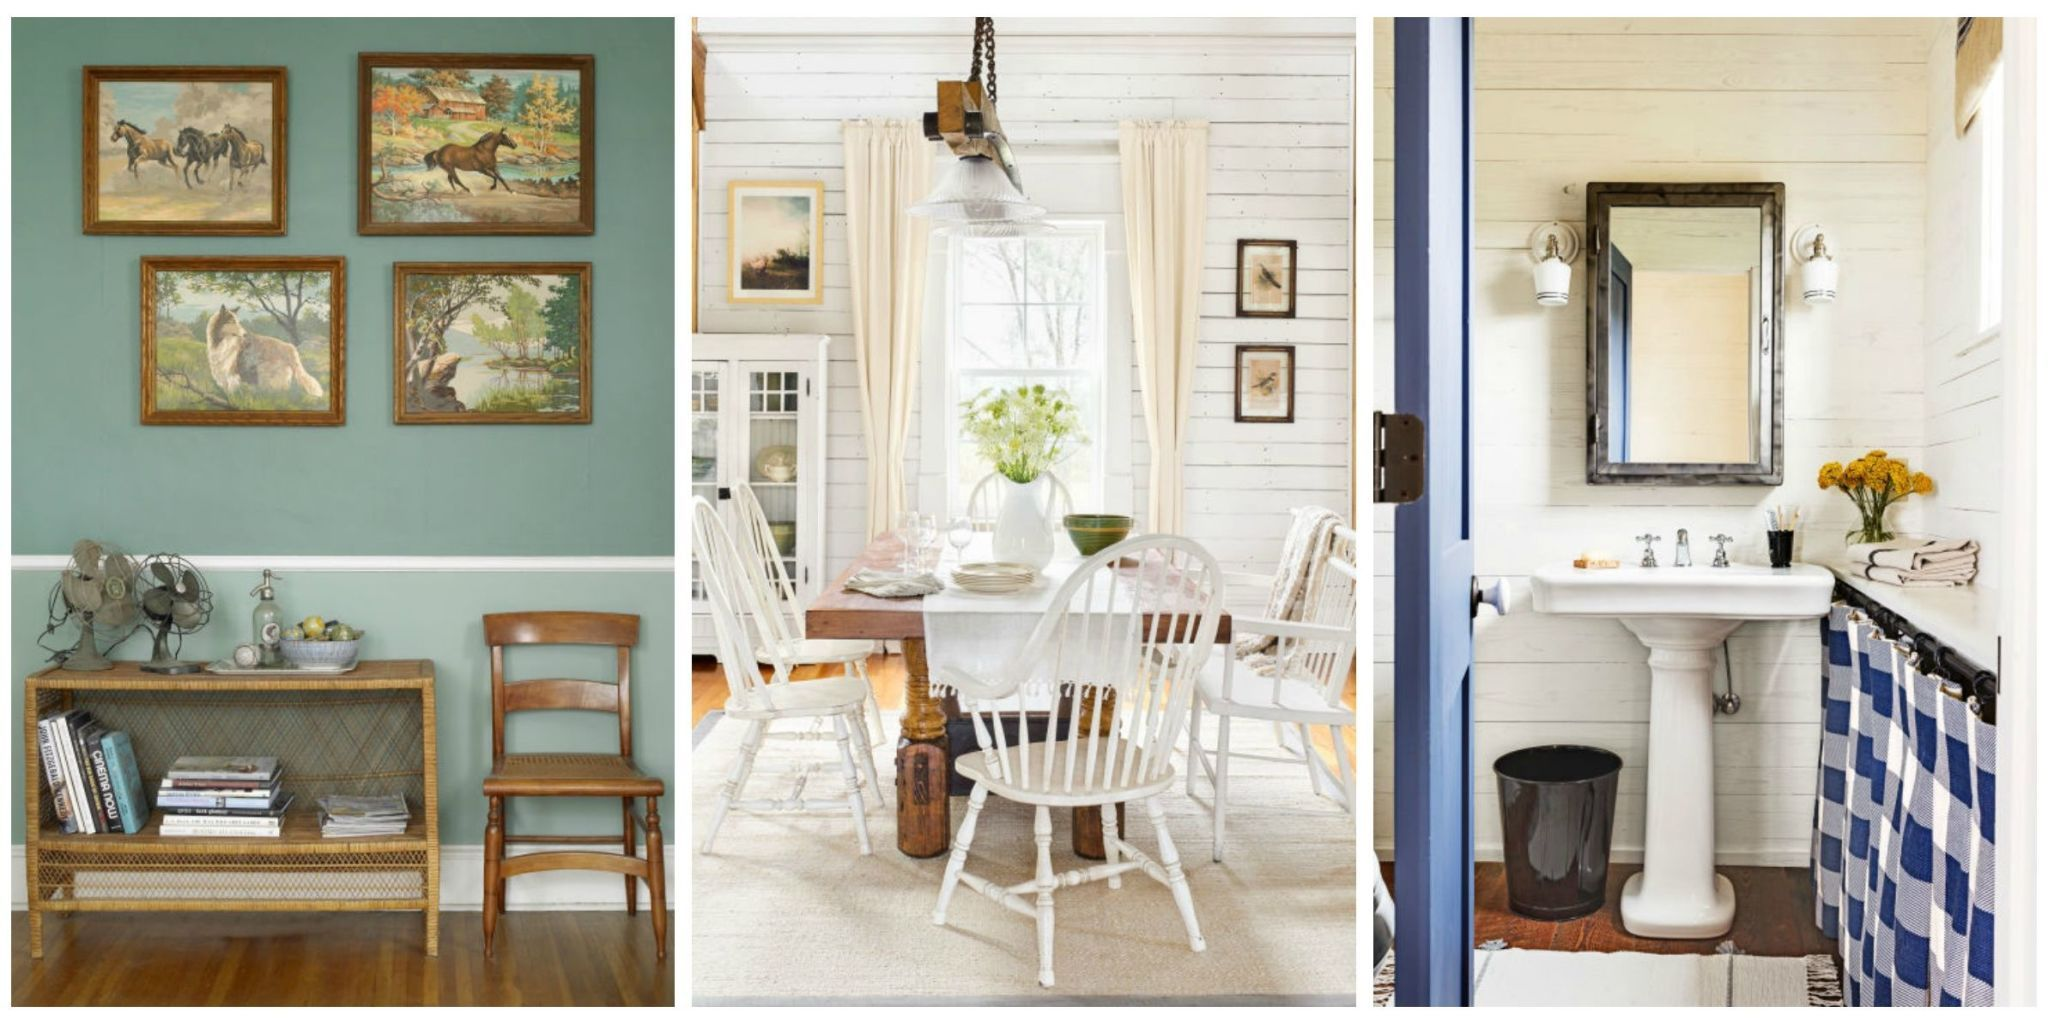 Beautiful Small Decorating Projects Can Freshen Up Your Home And Be Inexpensive. Try  One Or Two Of These Budget Friendly Fixes For An Instant Update!